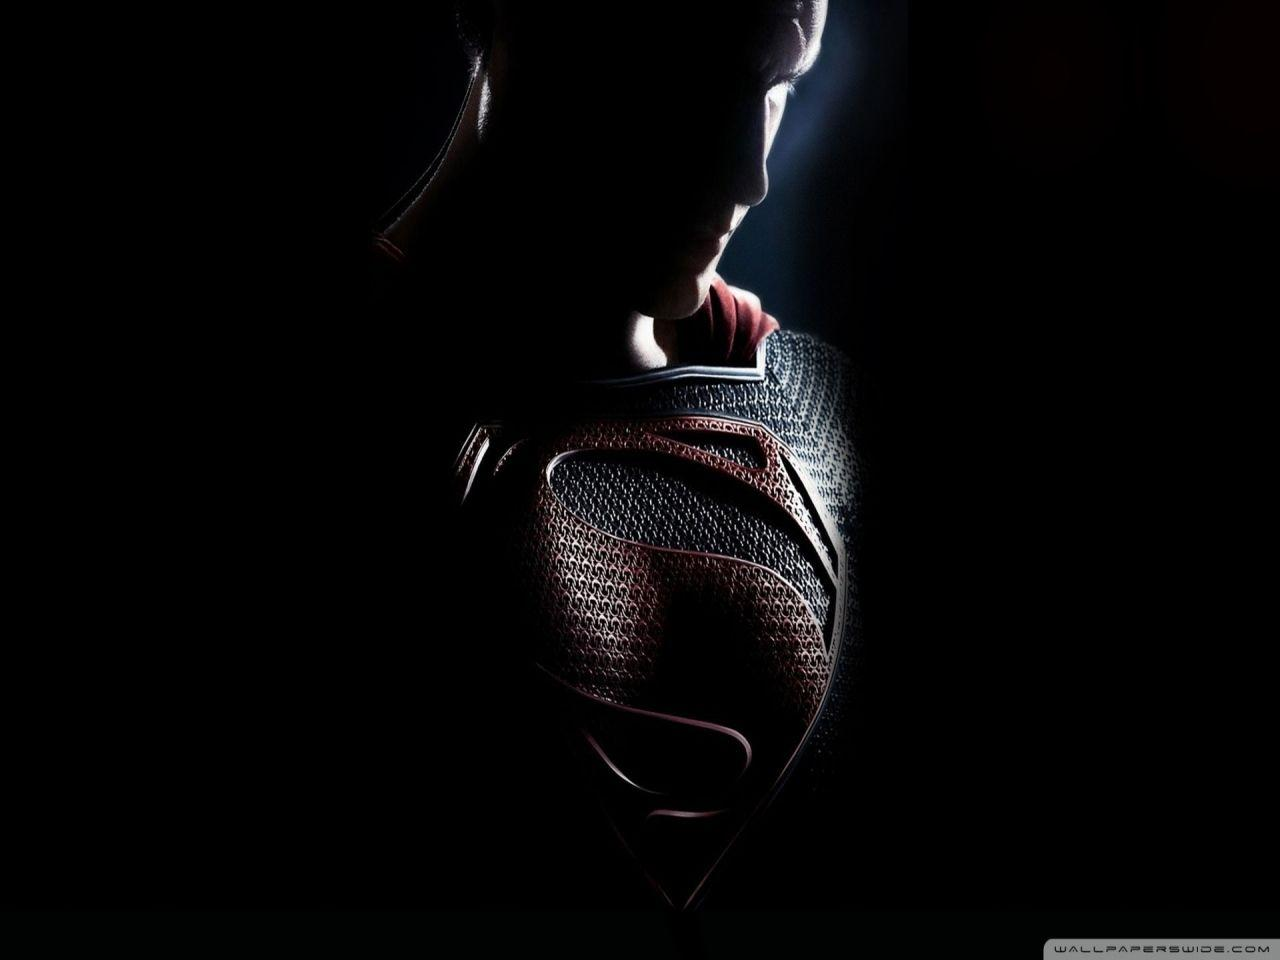 Free Download Superhero Wallpapers 1280x960 For Your